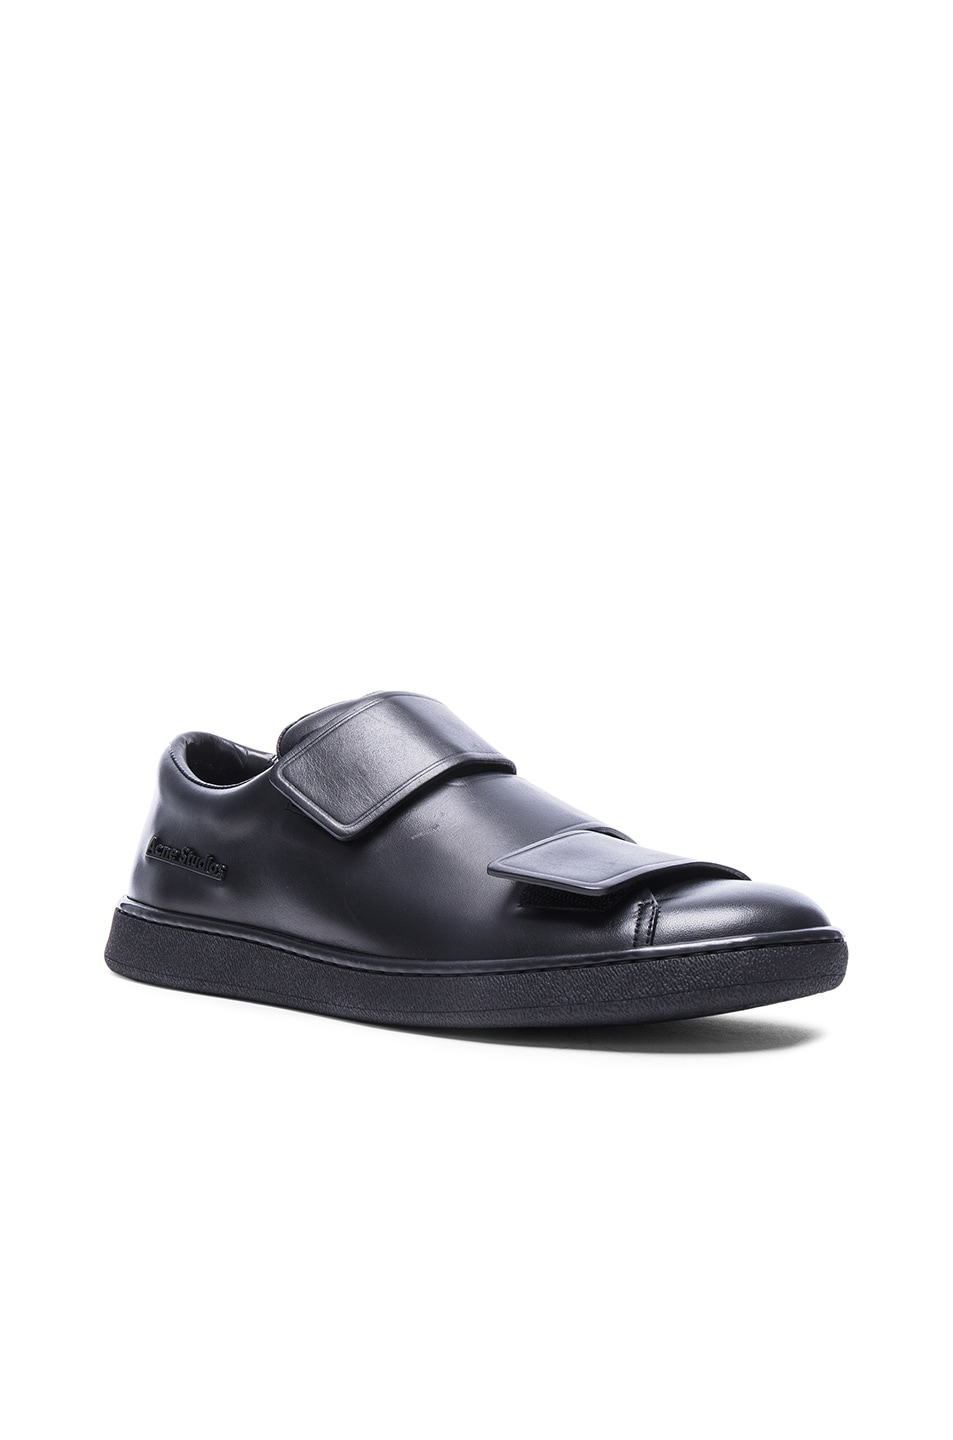 fdcc3c35d593 Image 1 of Acne Studios Leather Triple Lo Sneakers in Black